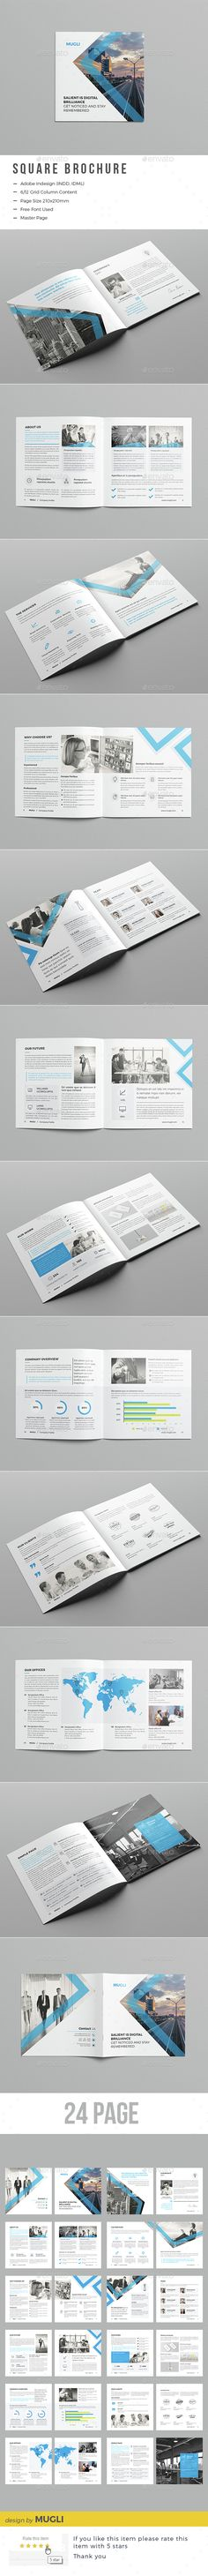 Corporate Square Brochure Template InDesign INDD. Download here: http://graphicriver.net/item/corporate-square-brochure/15302700?ref=ksioks